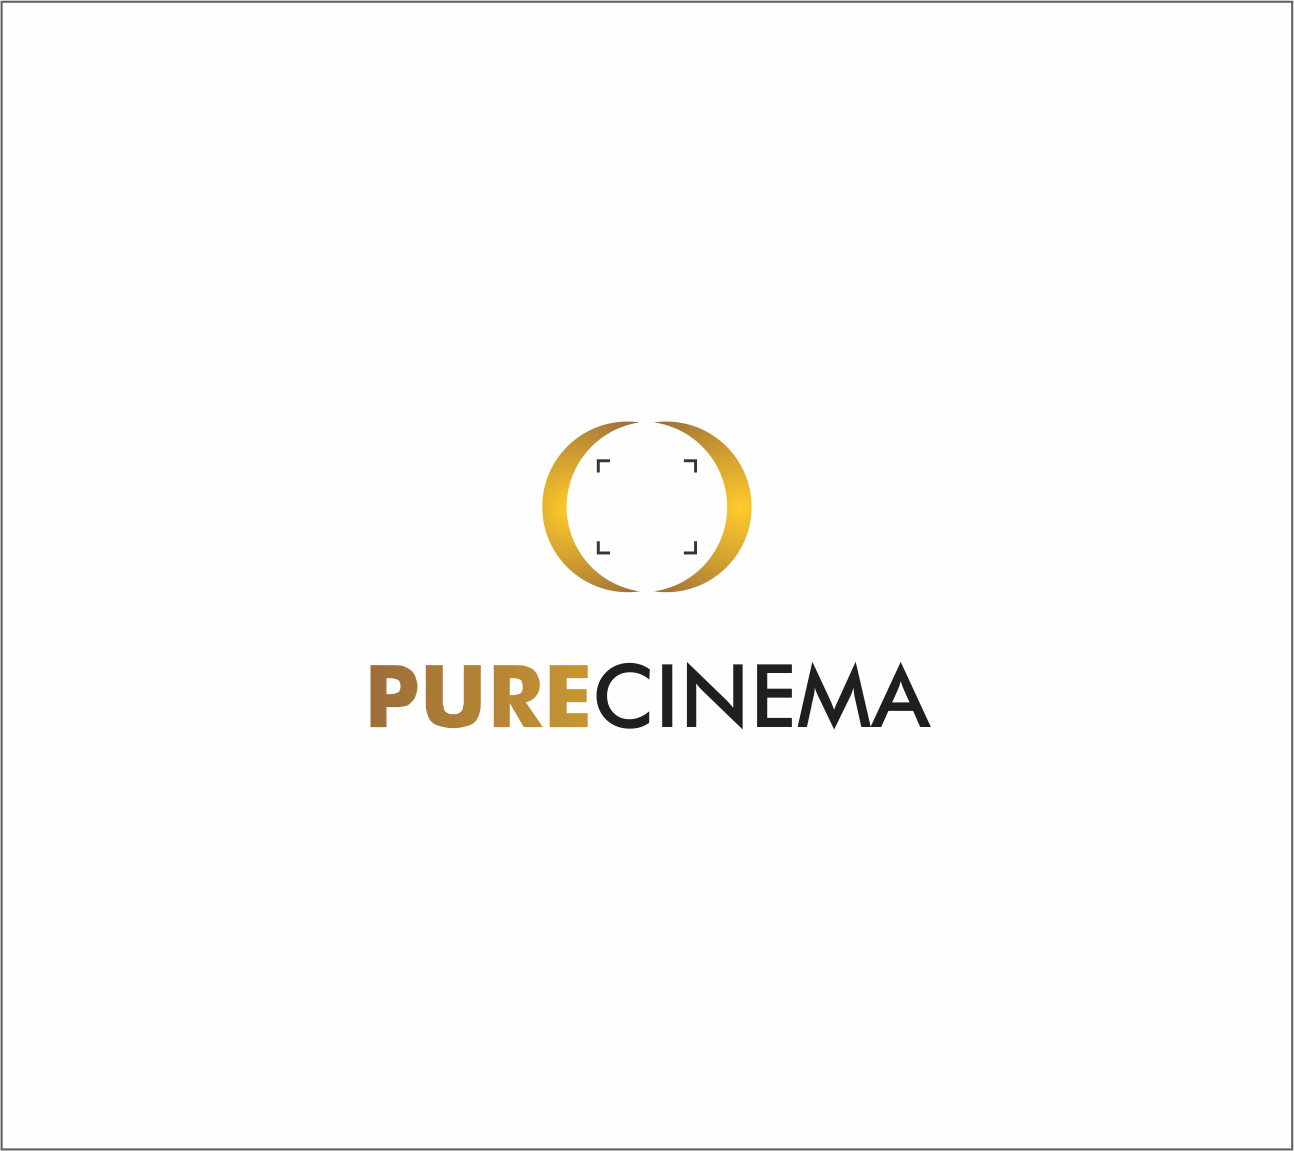 Logo Design by Armada Jamaluddin - Entry No. 47 in the Logo Design Contest Imaginative Logo Design for Pure Cinema.